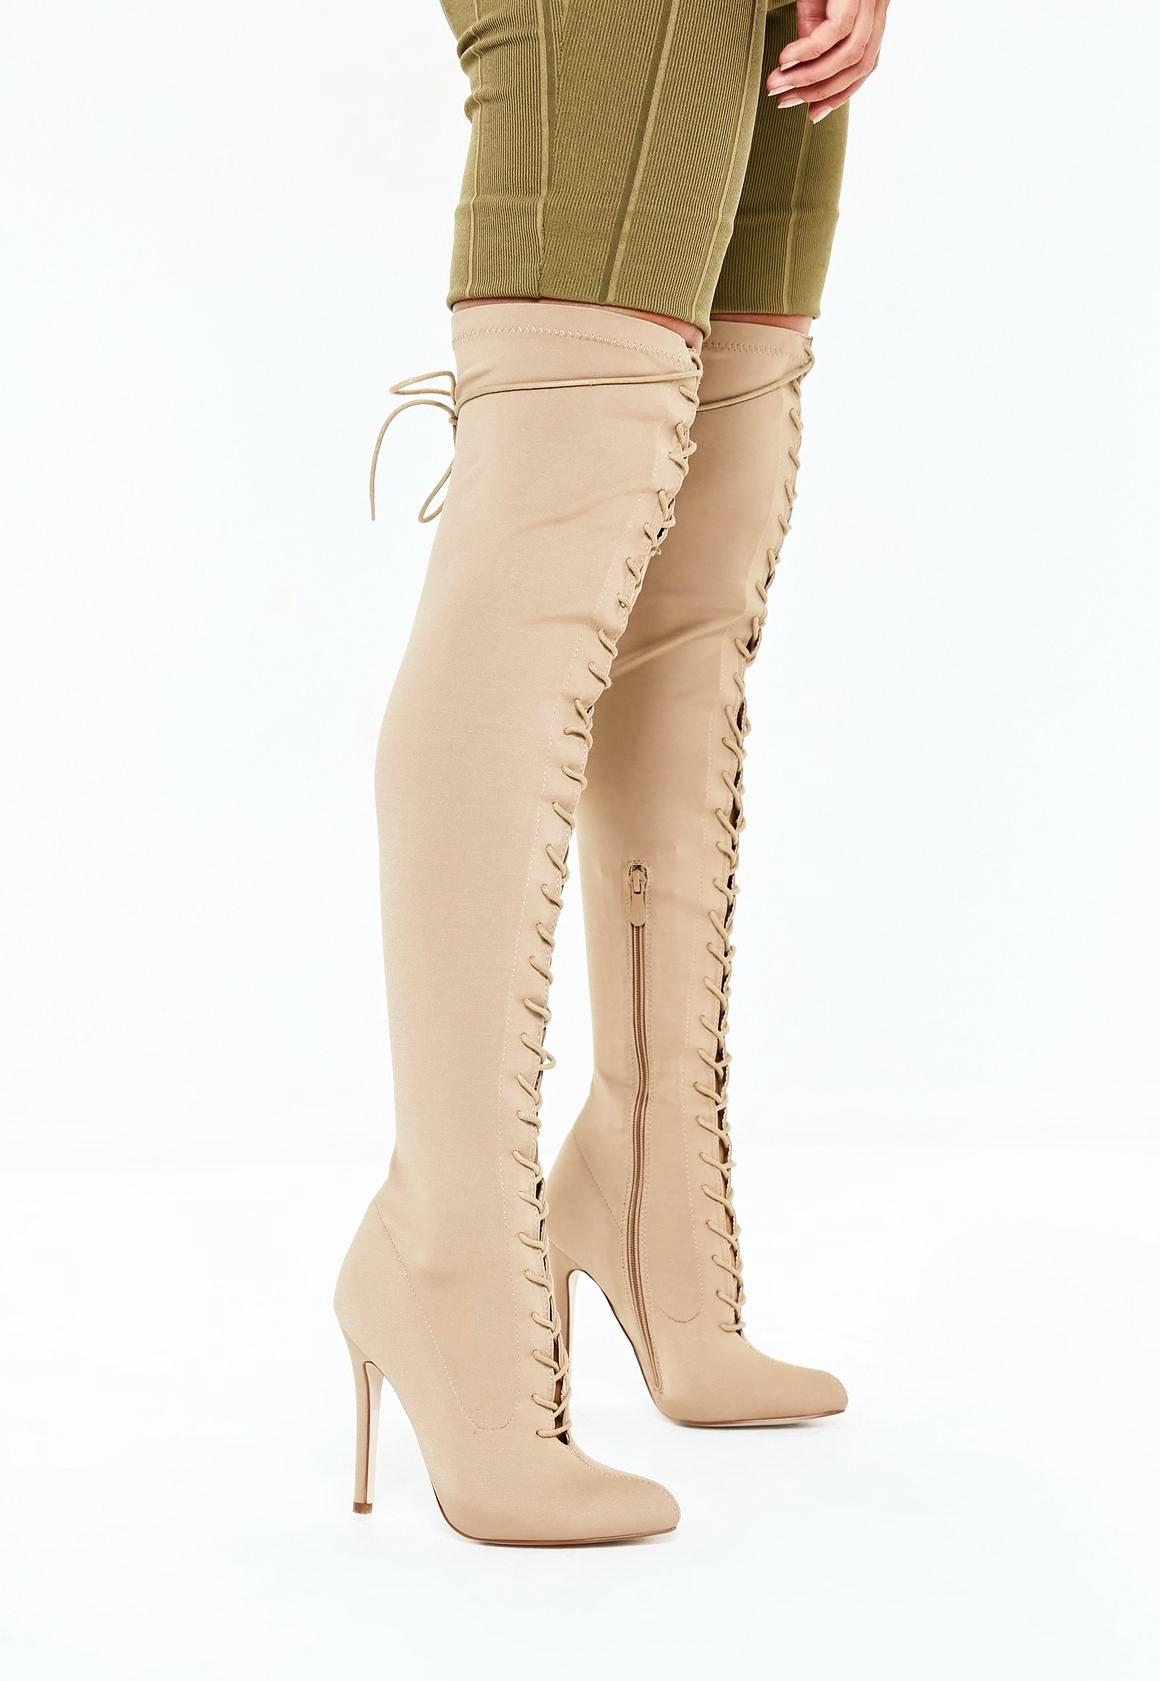 nude-front-lace-lycra-over-the-knee-boots.jpg